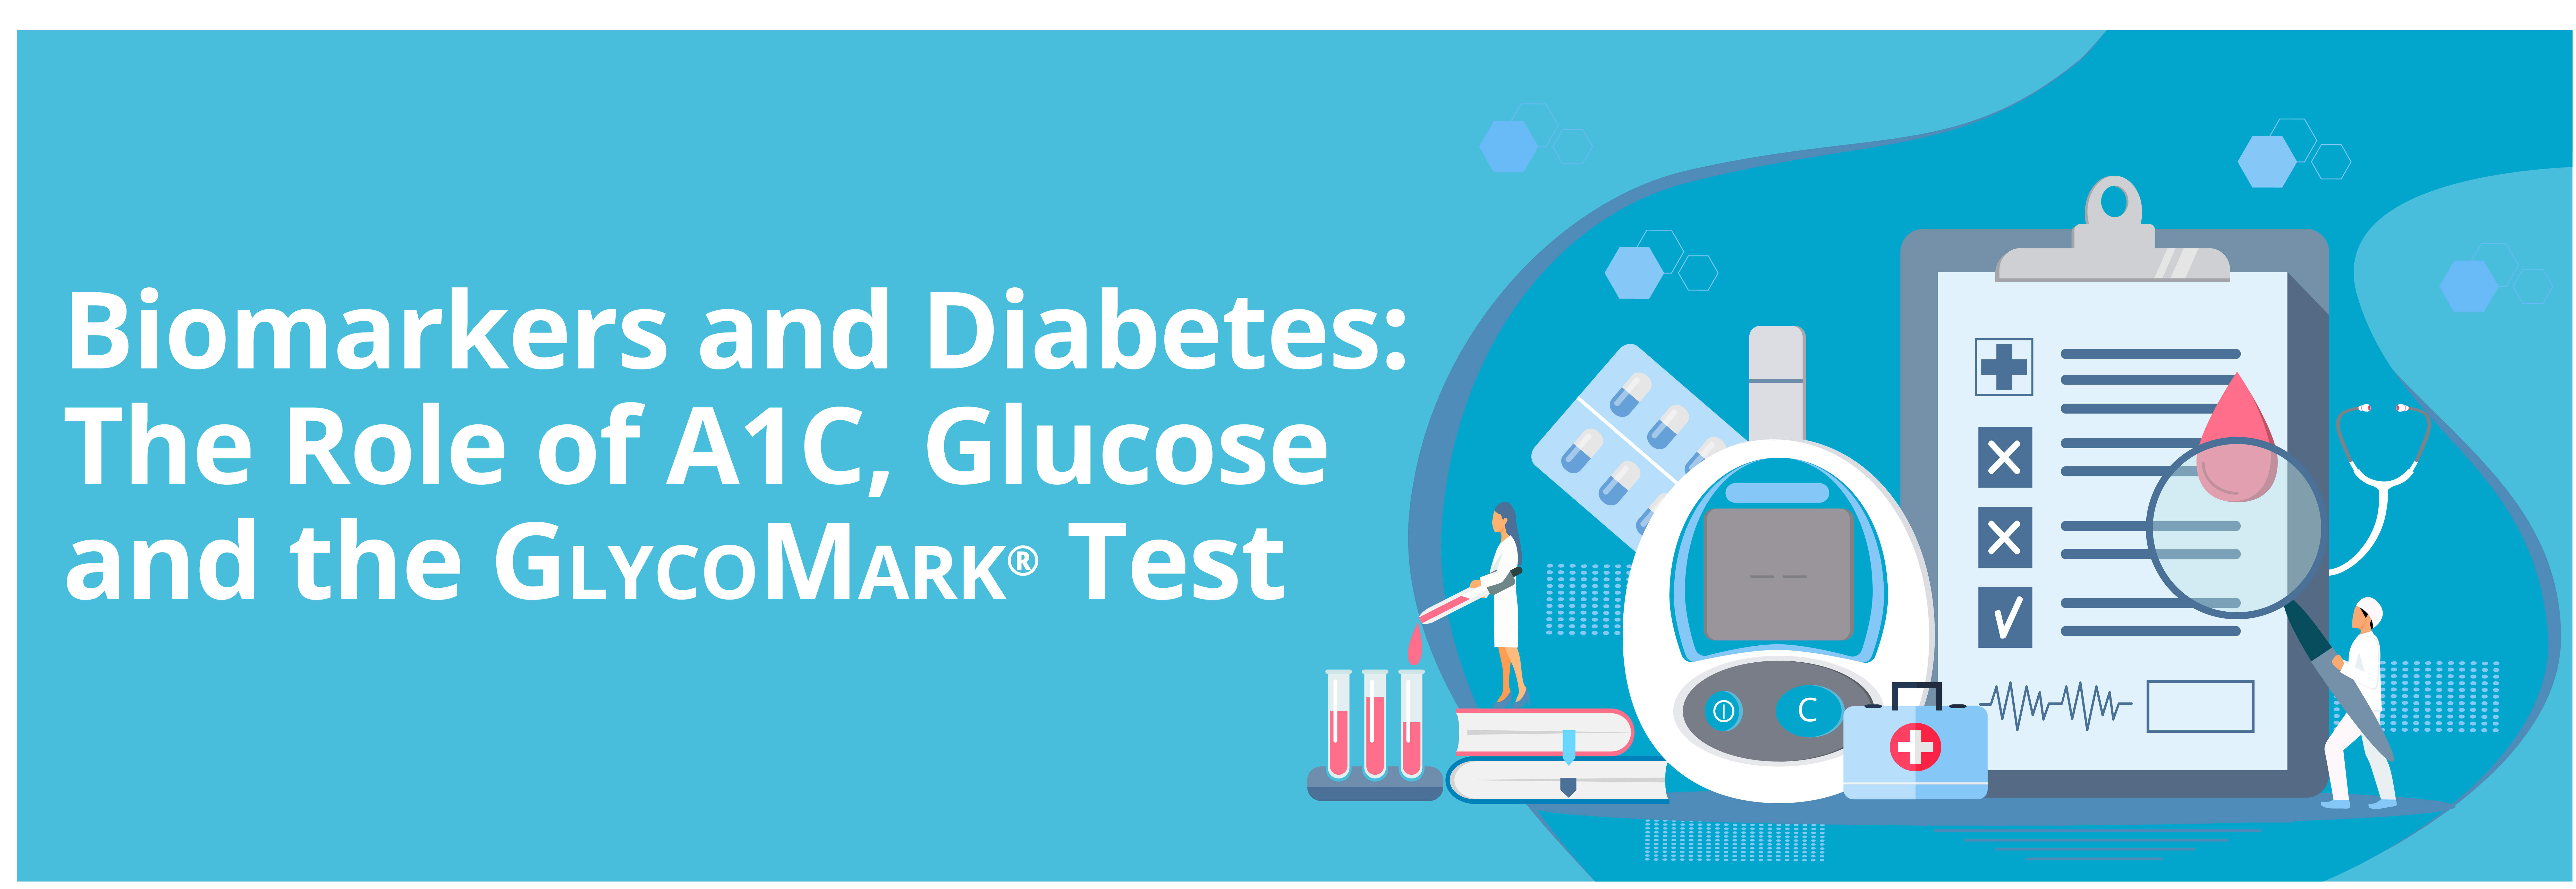 Biomarkers and Diabetes